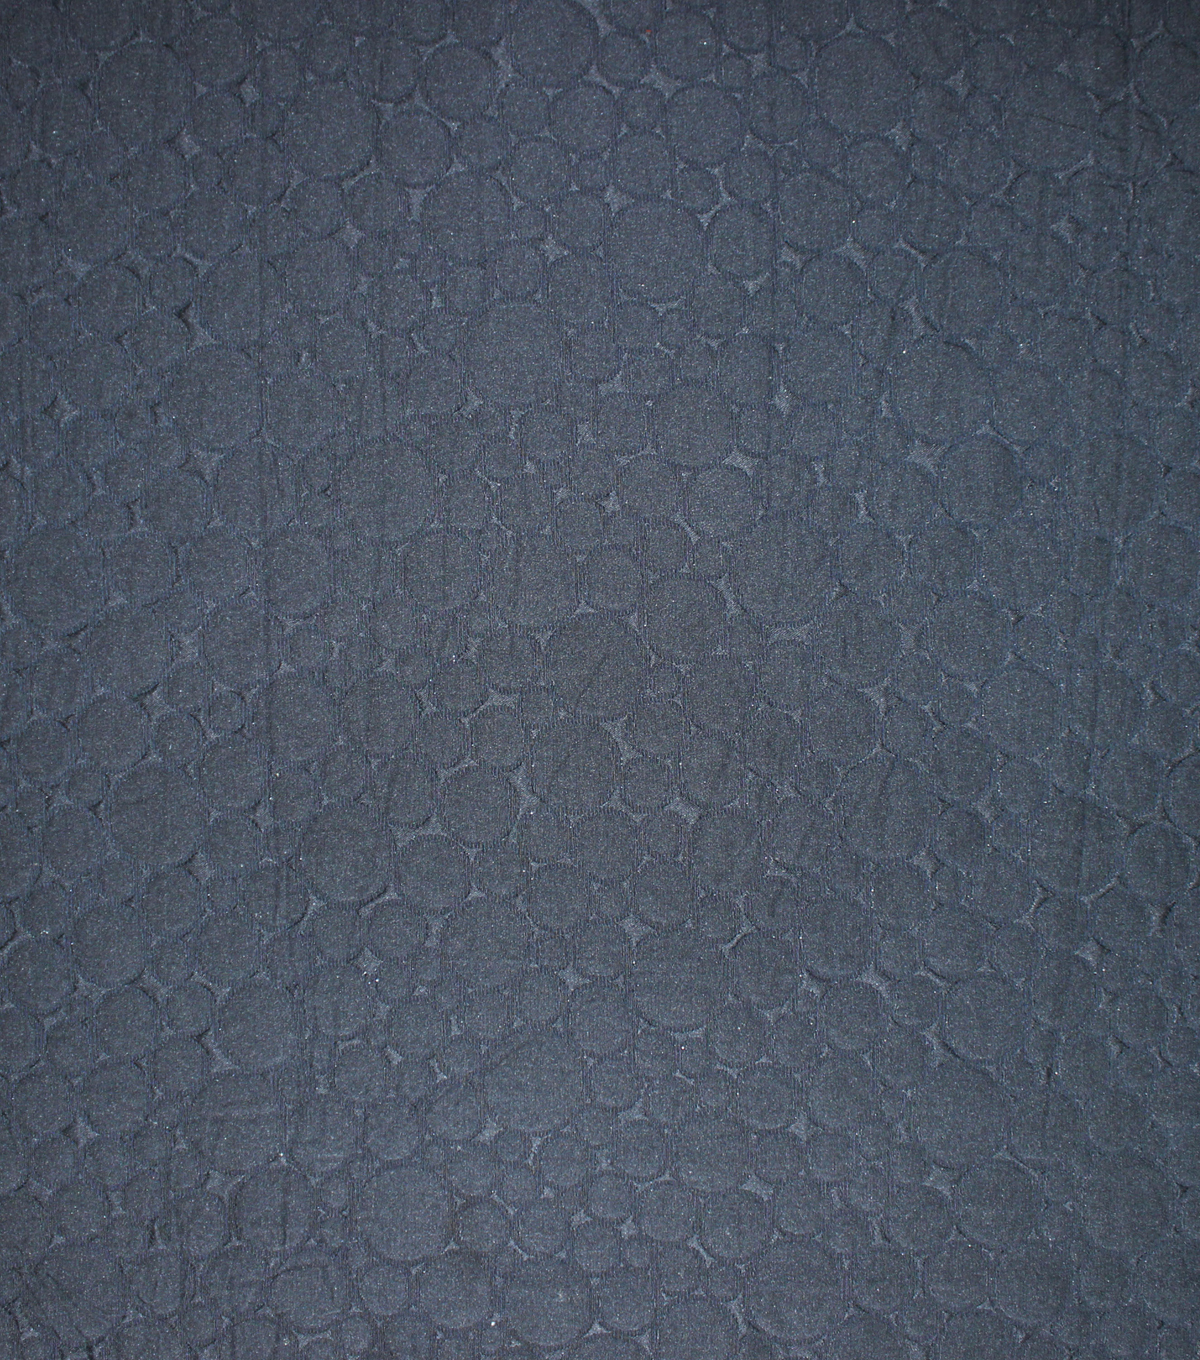 Home Decor 8\u0022x8\u0022 Fabric Swatch-Upholstery Fabric Barrow M8341-5978 Ebony